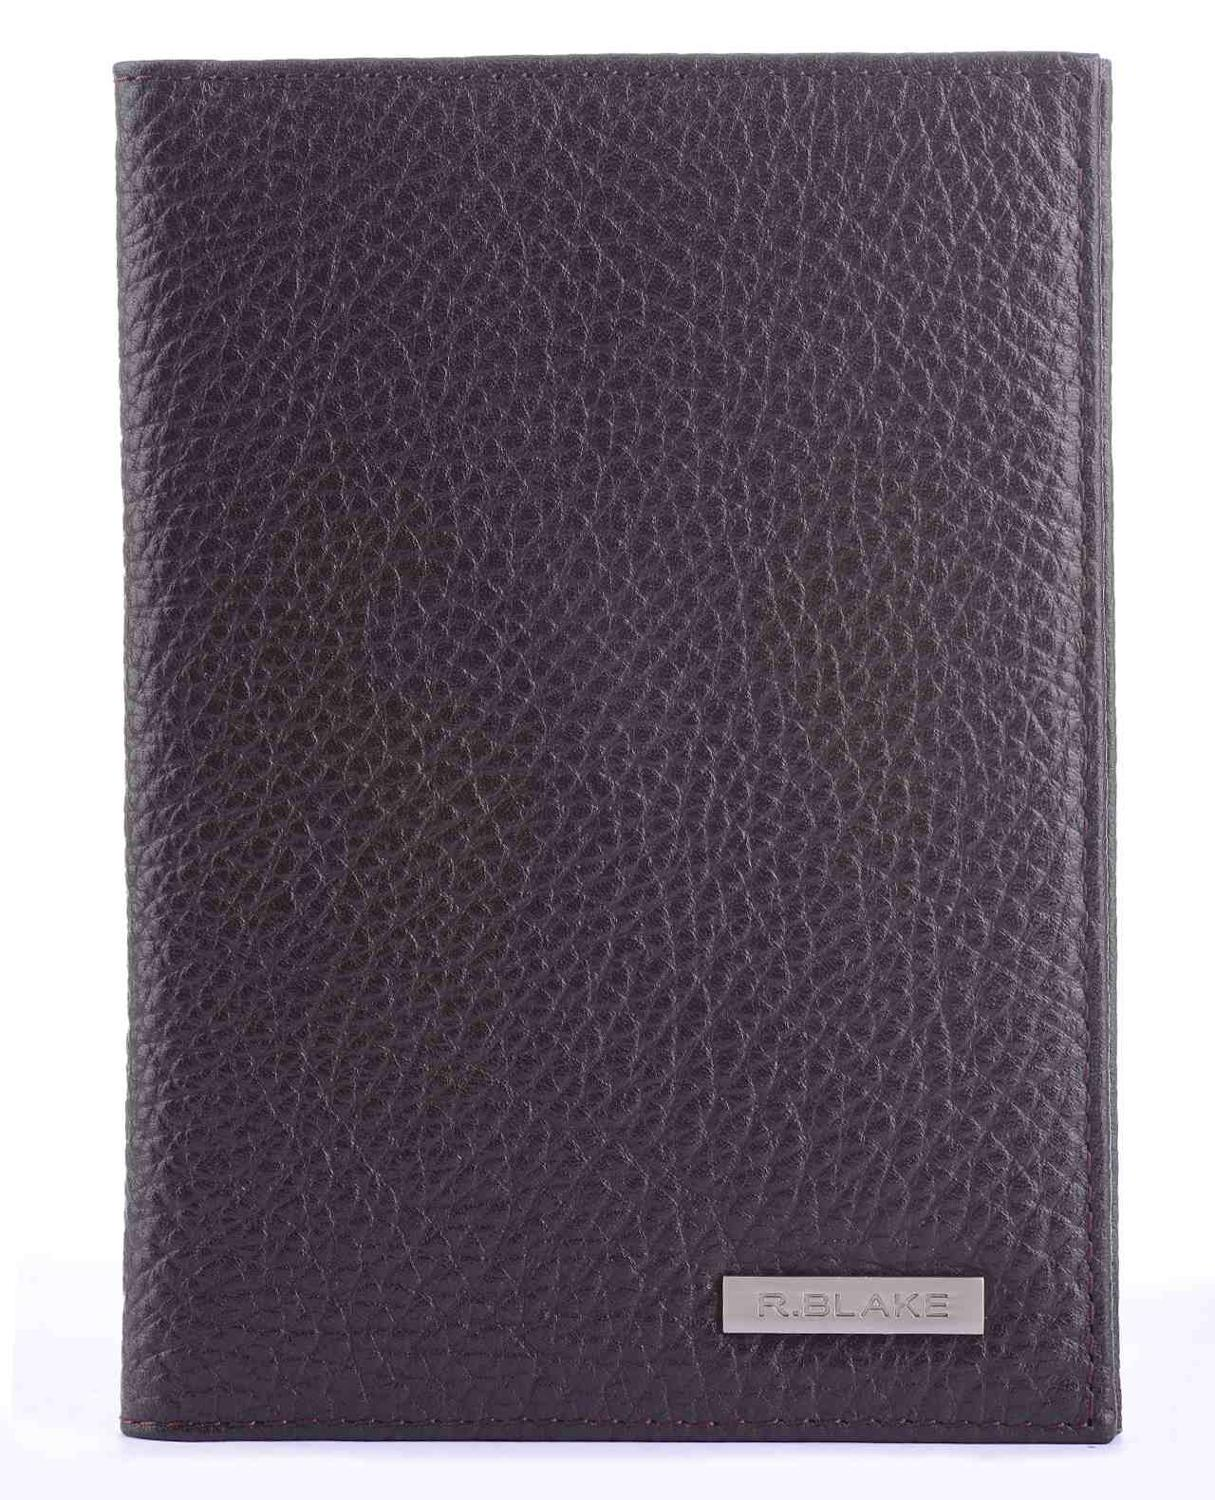 R. Blake Cover On The Passport And For Avtodokumentov Genuine Leather Cover Money